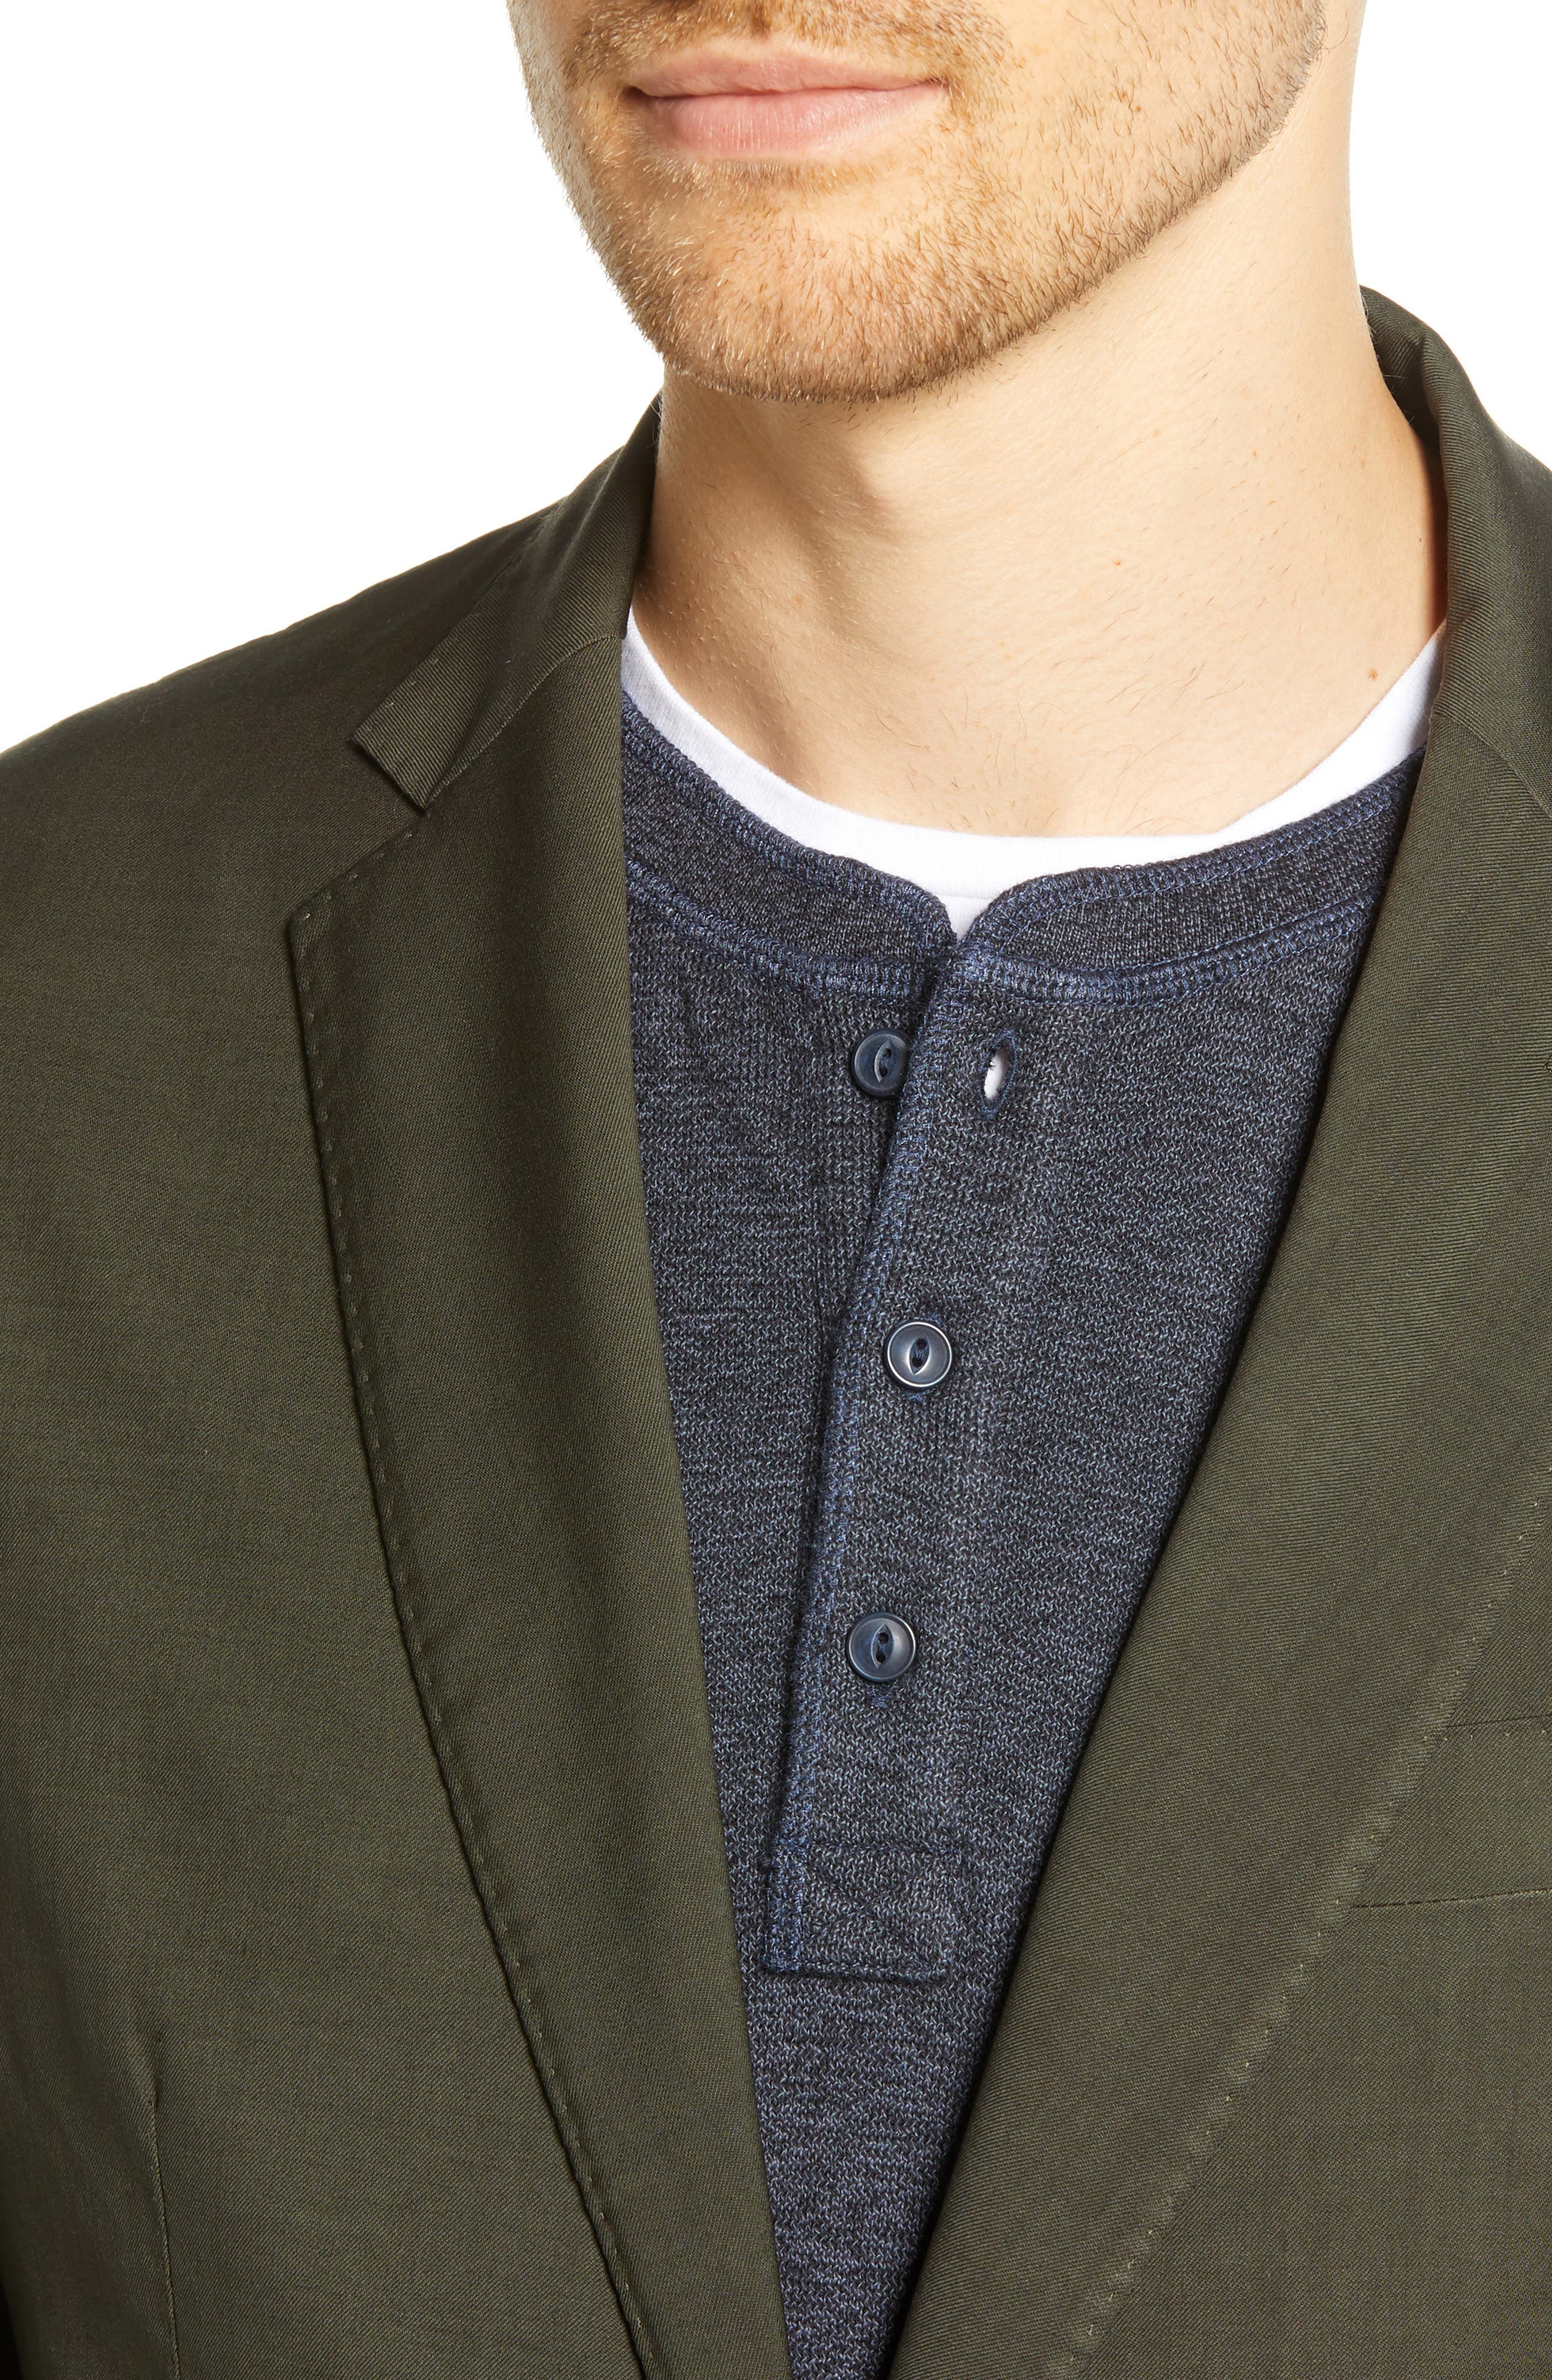 Extra Trim Fit Garment Dyed Wool Sport Coat,                             Alternate thumbnail 4, color,                             OLIVE